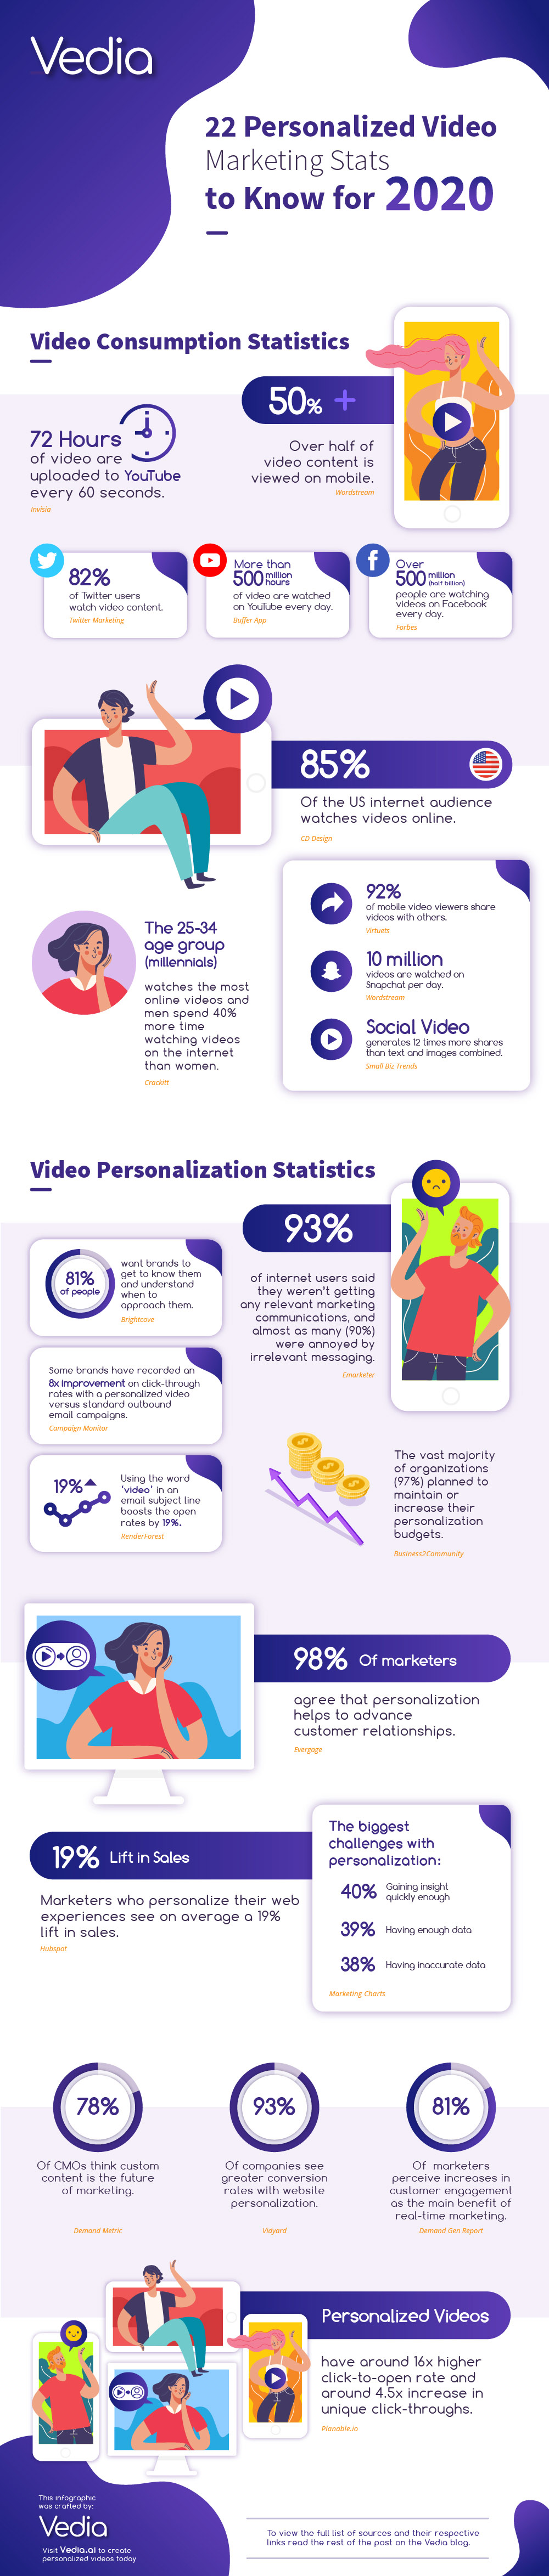 22 Personalized Video Marketing Stats to Know for 2020